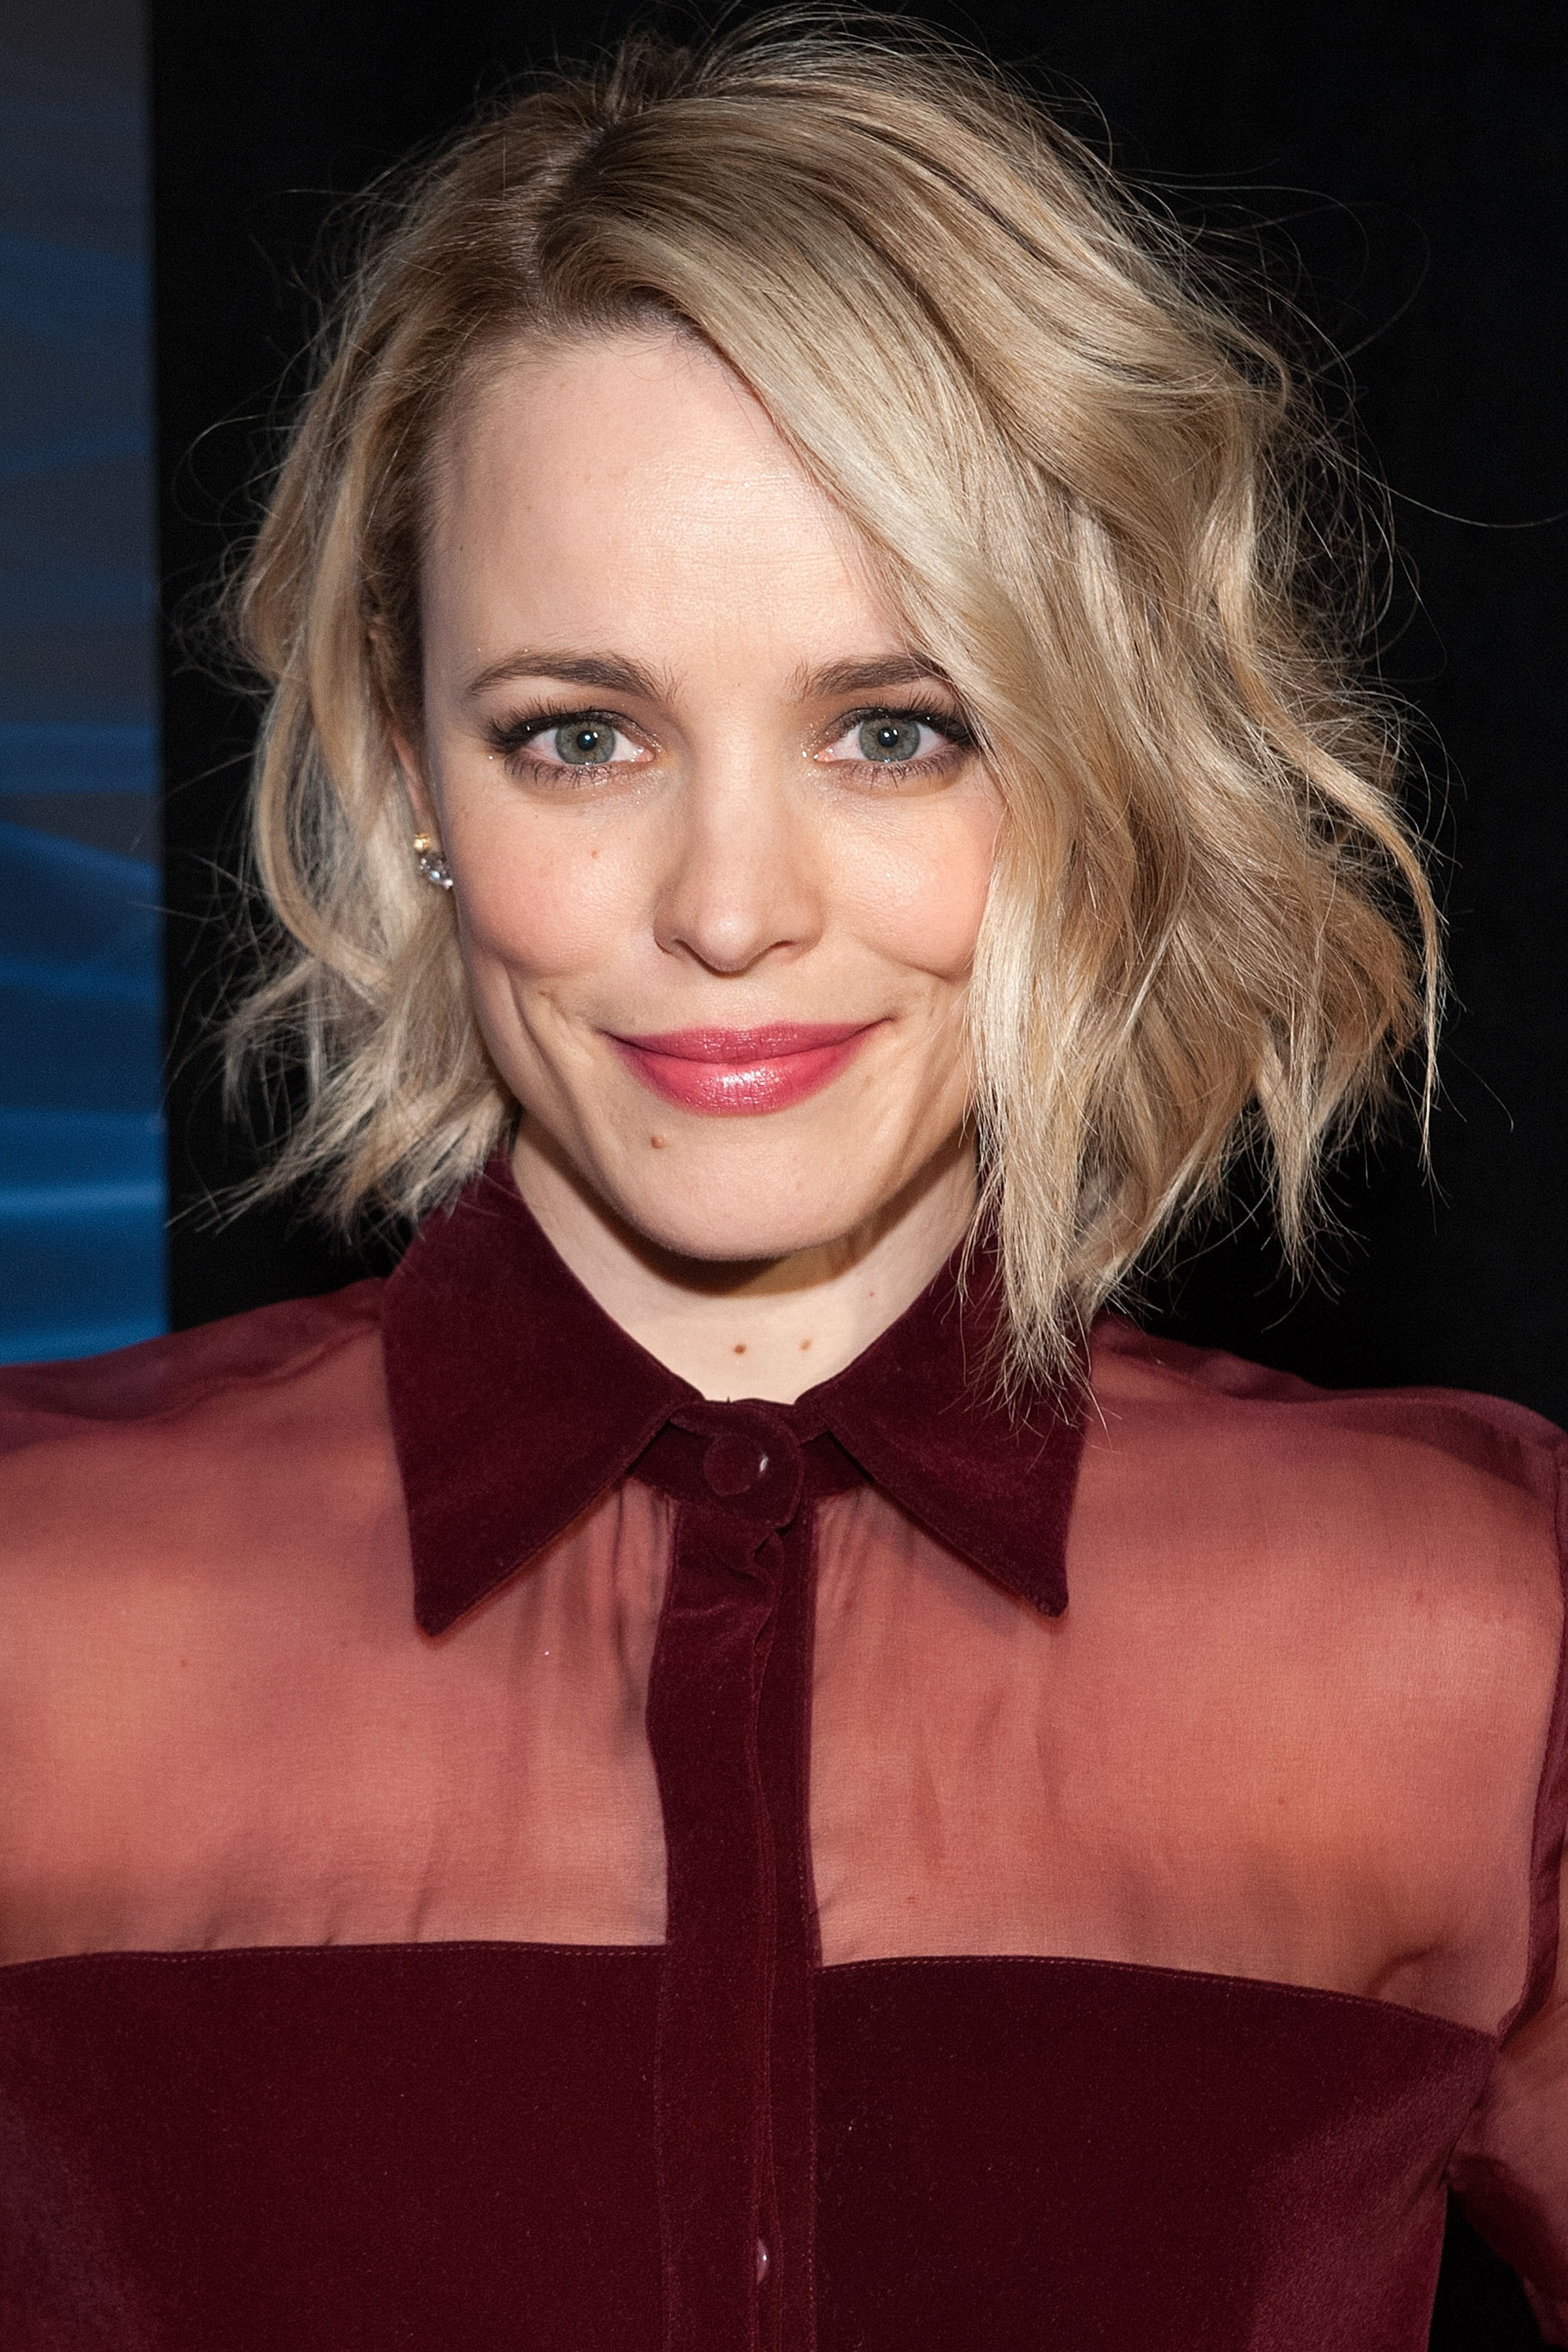 Magnificent 37 Cute Bob And Lob Haircuts 2017 Best Celebrity Long Bob Hairstyles Short Hairstyles For Black Women Fulllsitofus